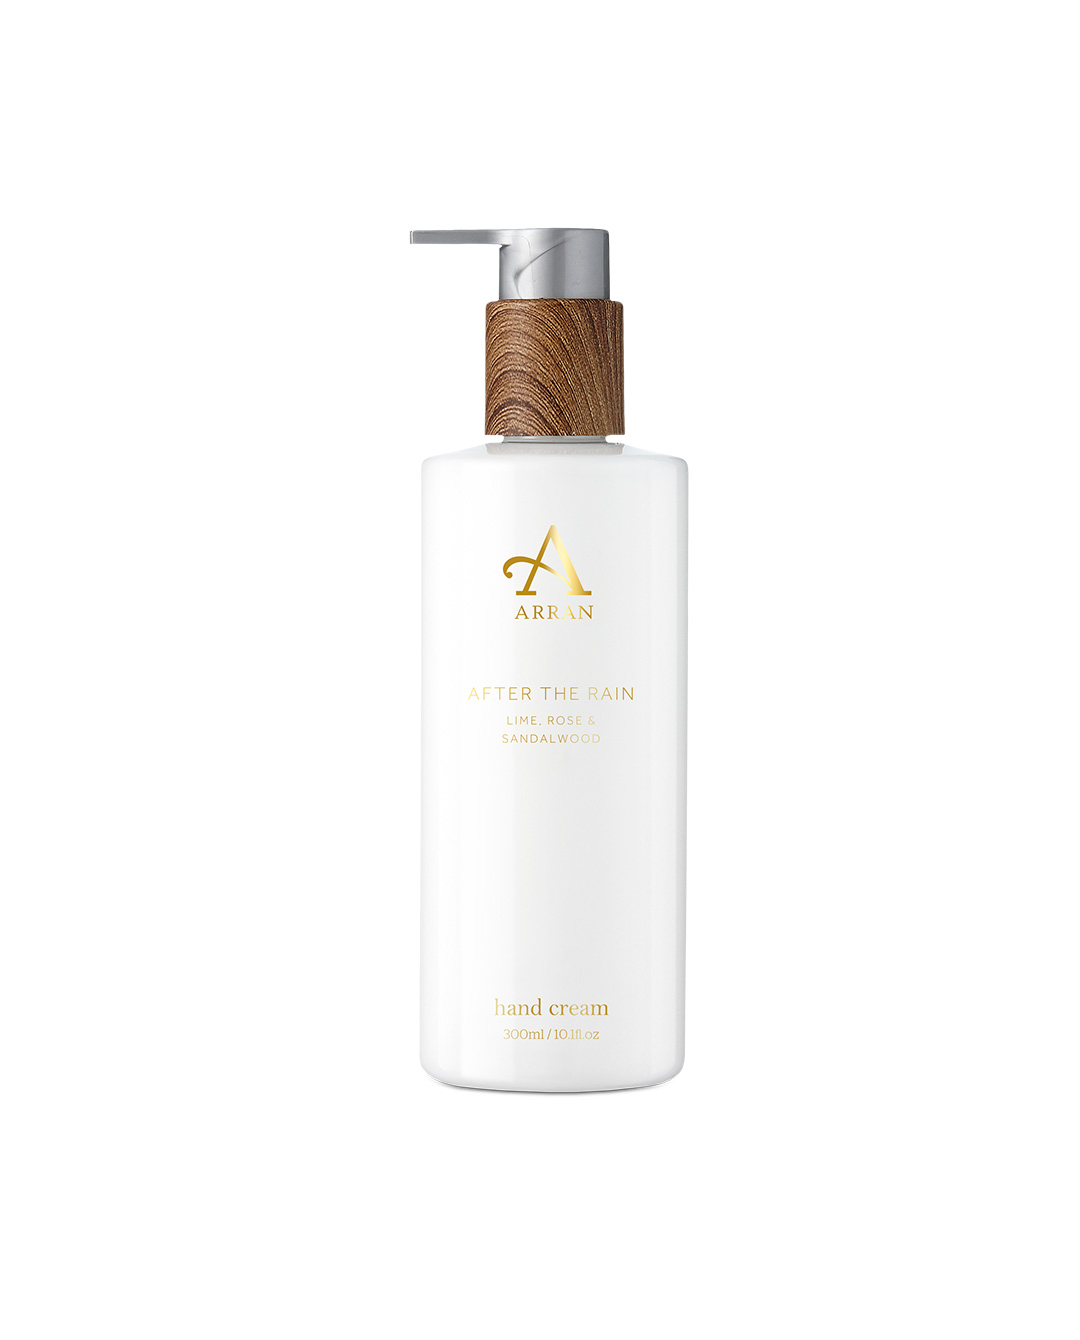 'After The Rain' Hand Cream - 300ml